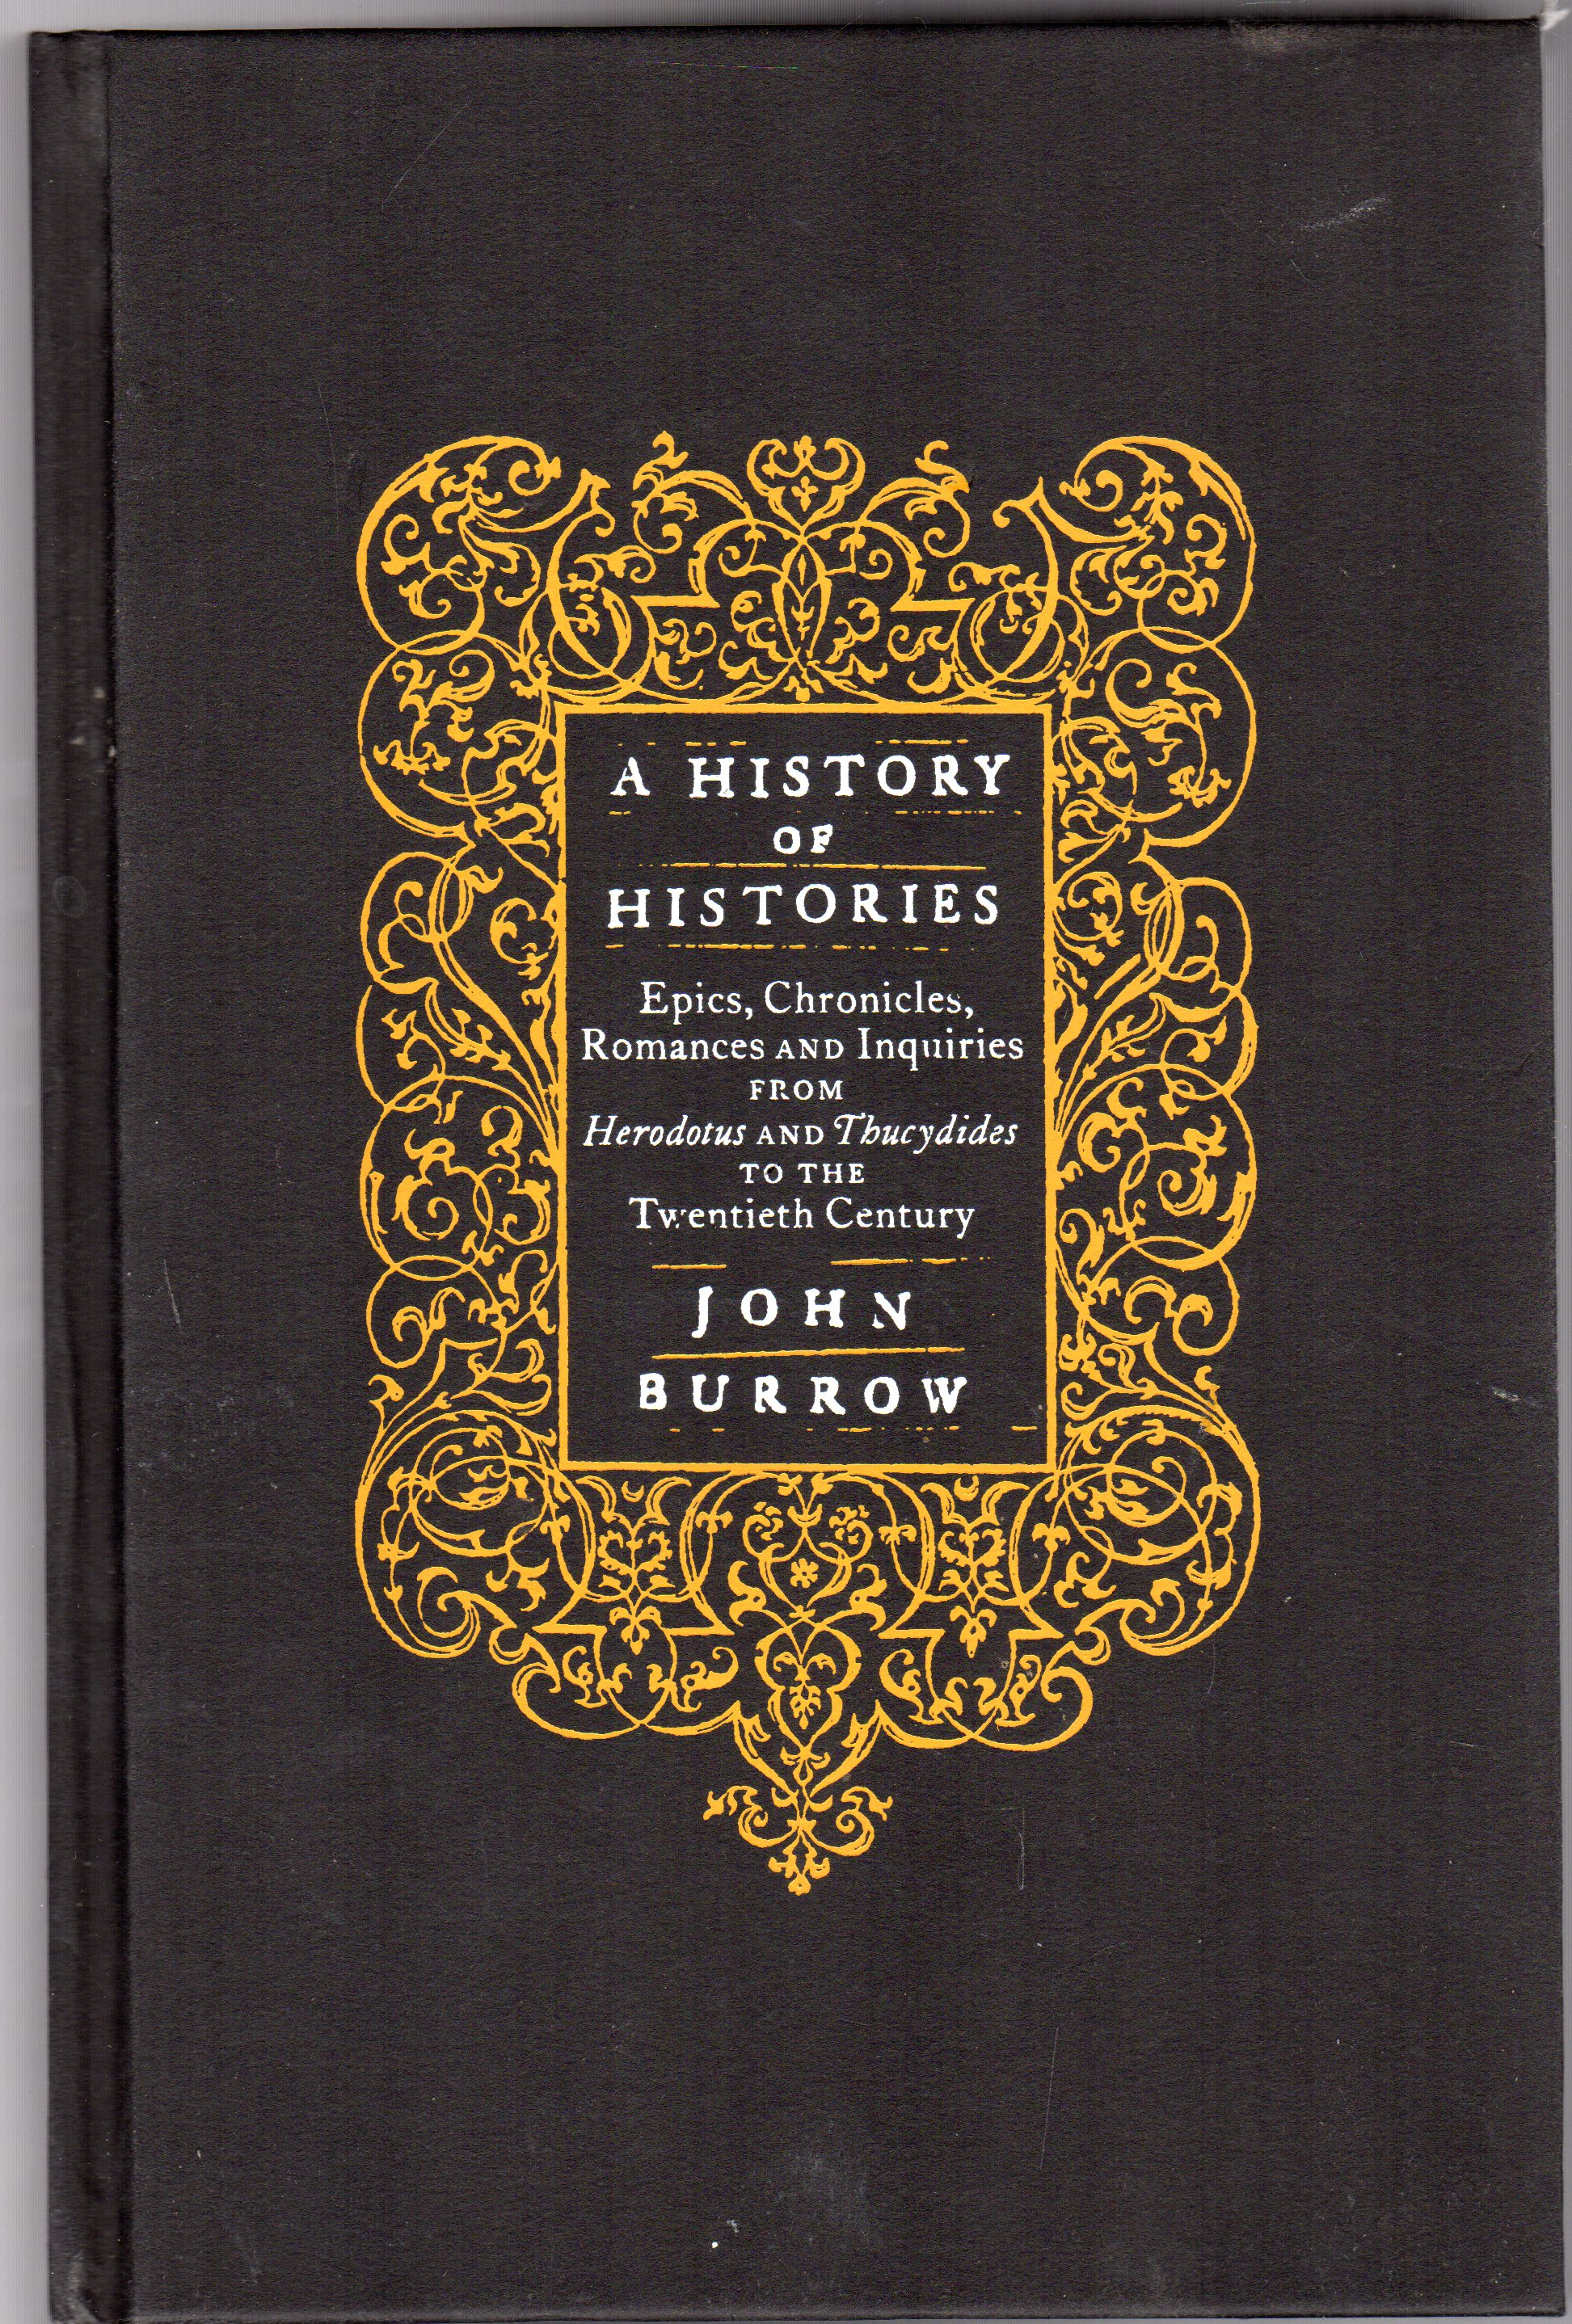 Image for A History of Histories: Epics, Chronicles, Romances and Inquiries from Herodotus and Thucydides to the Twentieth Century